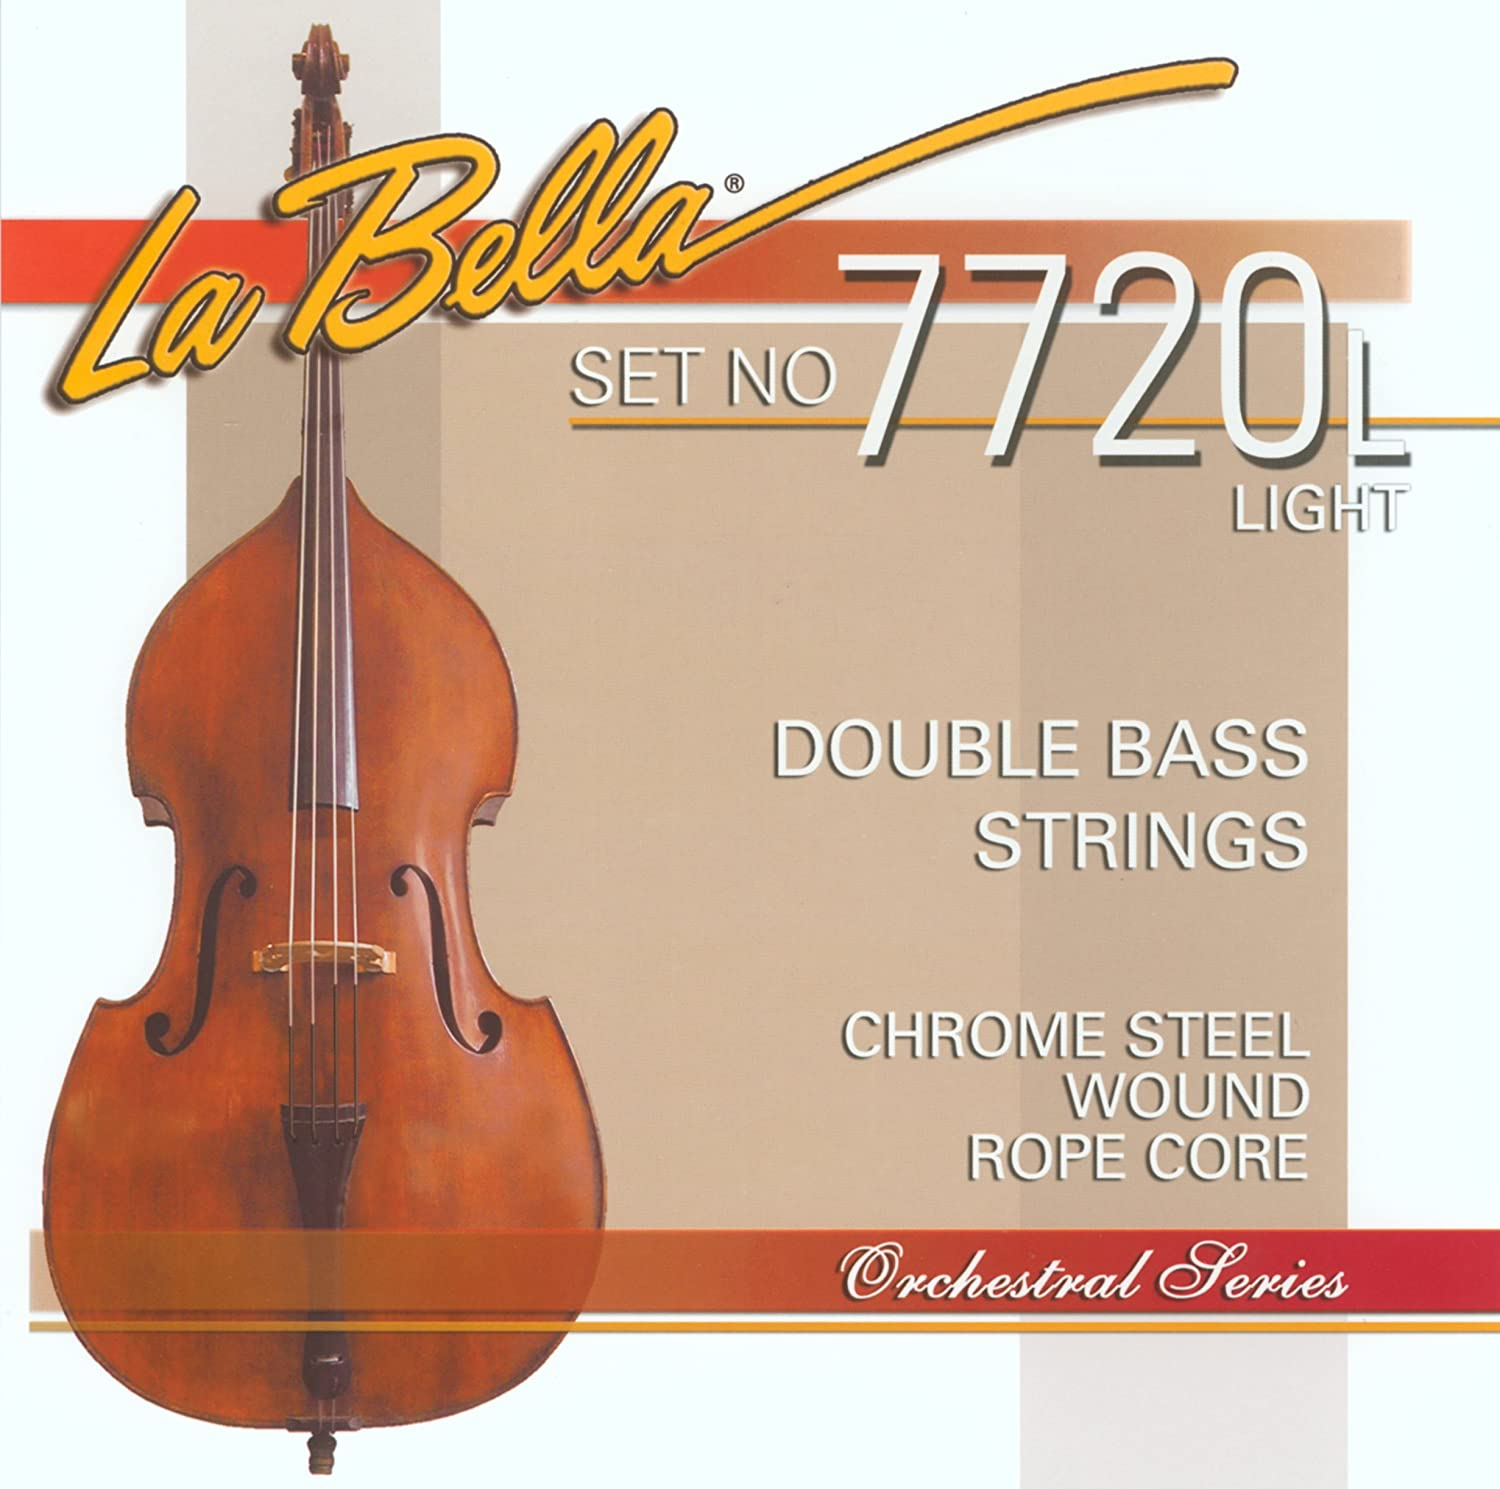 La Bella 7720L/Orchestral/Light Tension/Double Bass Strings/Chrome Steel Flat Wound on a Rope Core   B00OOJG3SQ